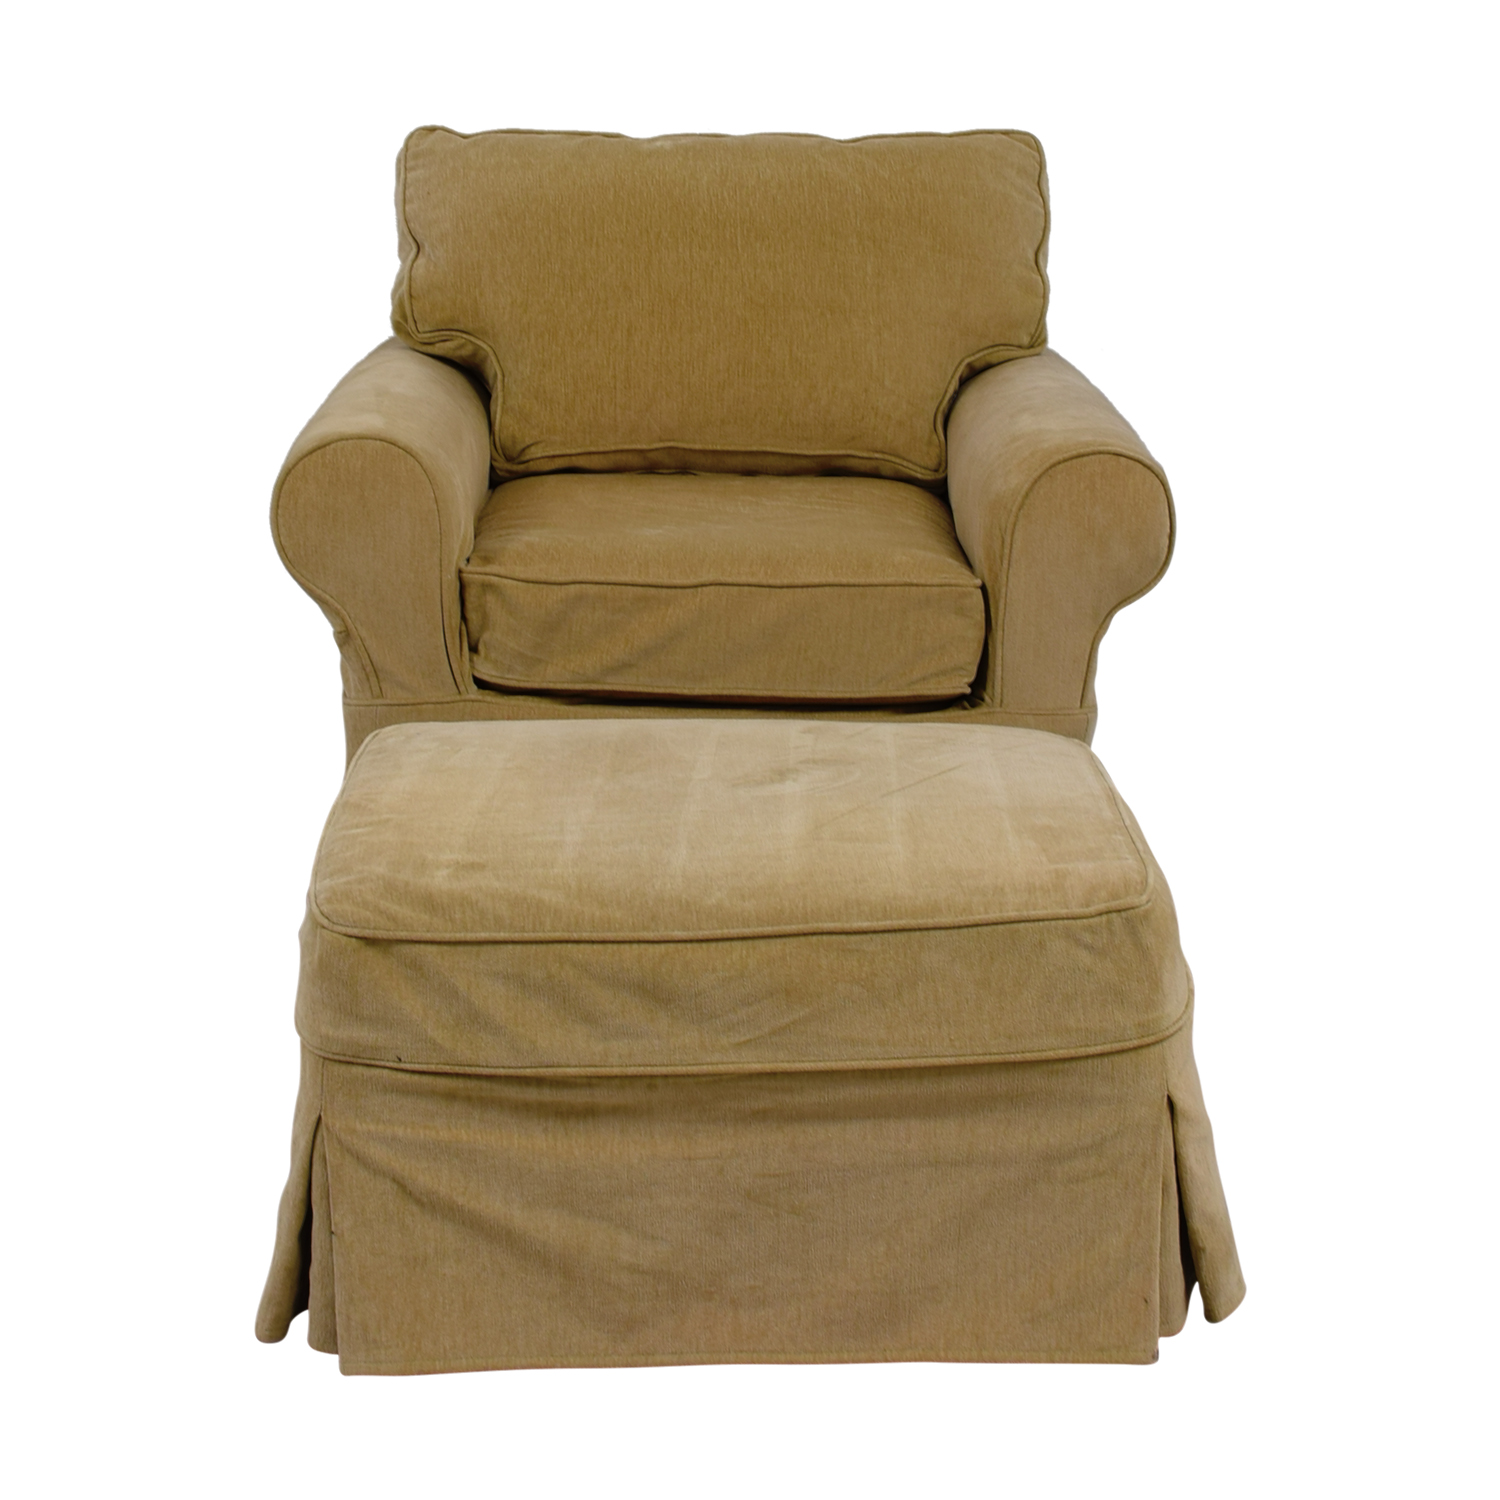 Mitchell Gold + Bob Williams Mitchell Gold + Bob Williams Beige Accent Chair and Ottoman price